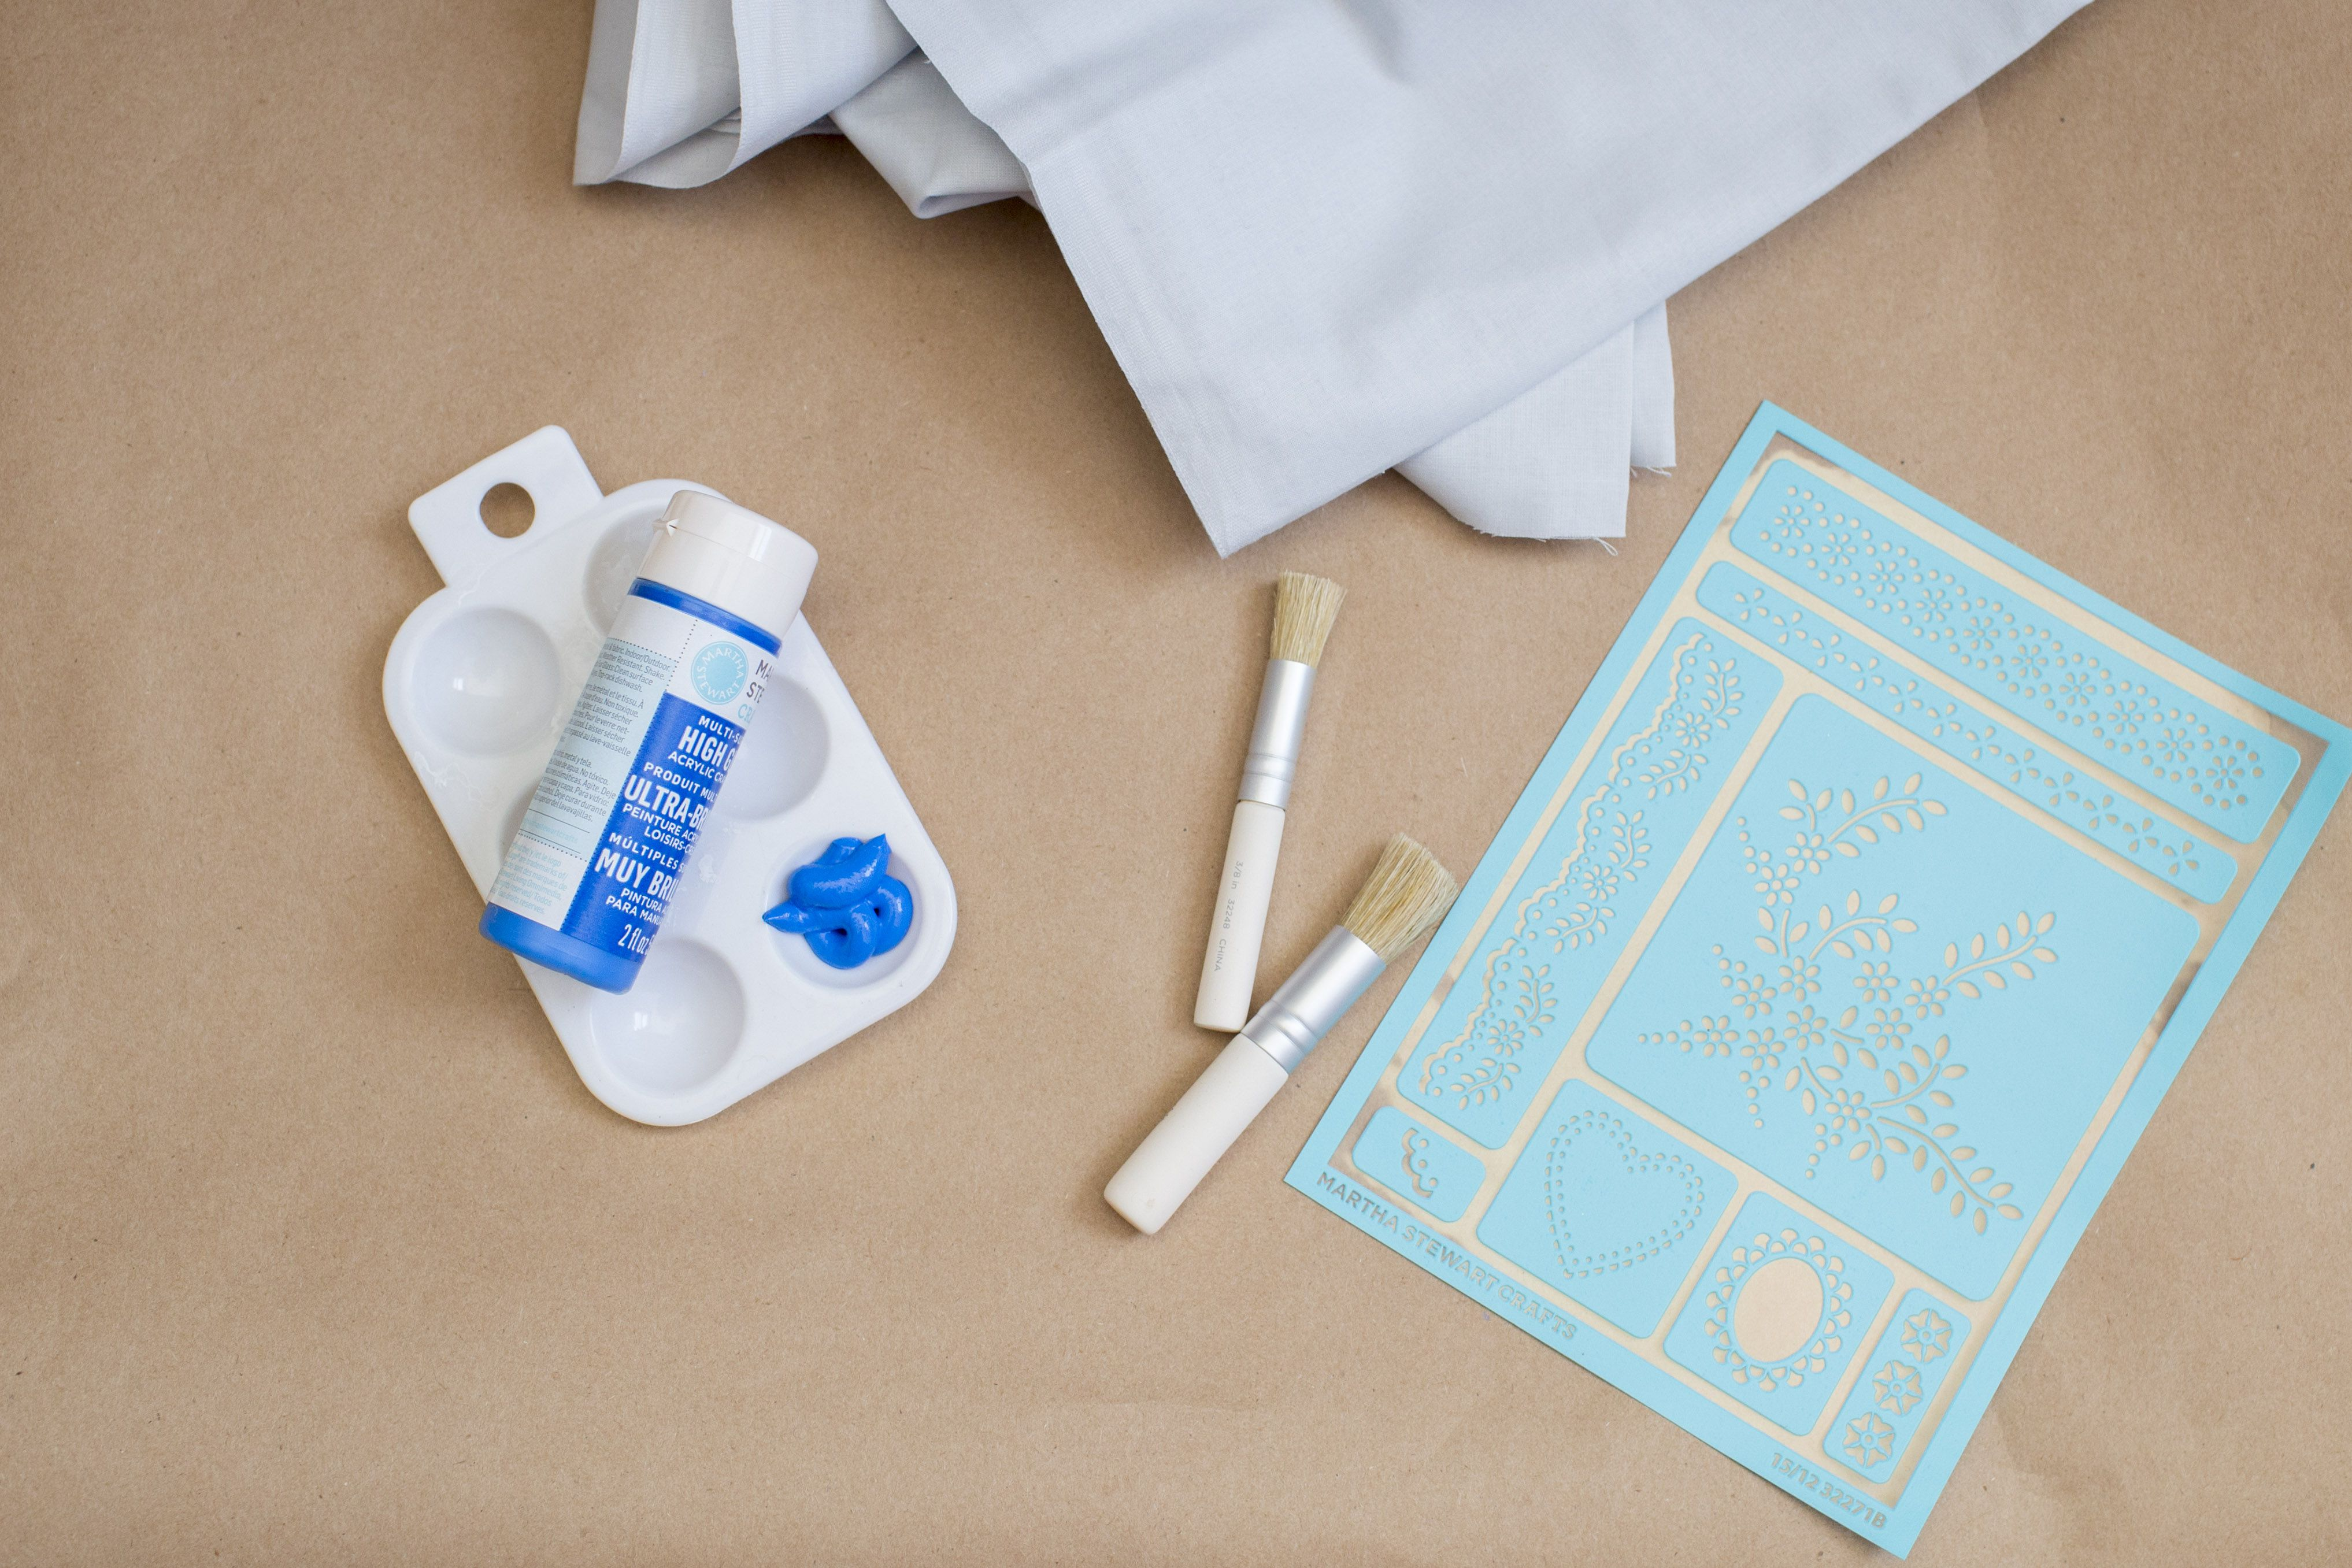 Materials needed to stencil a pattern on fabric